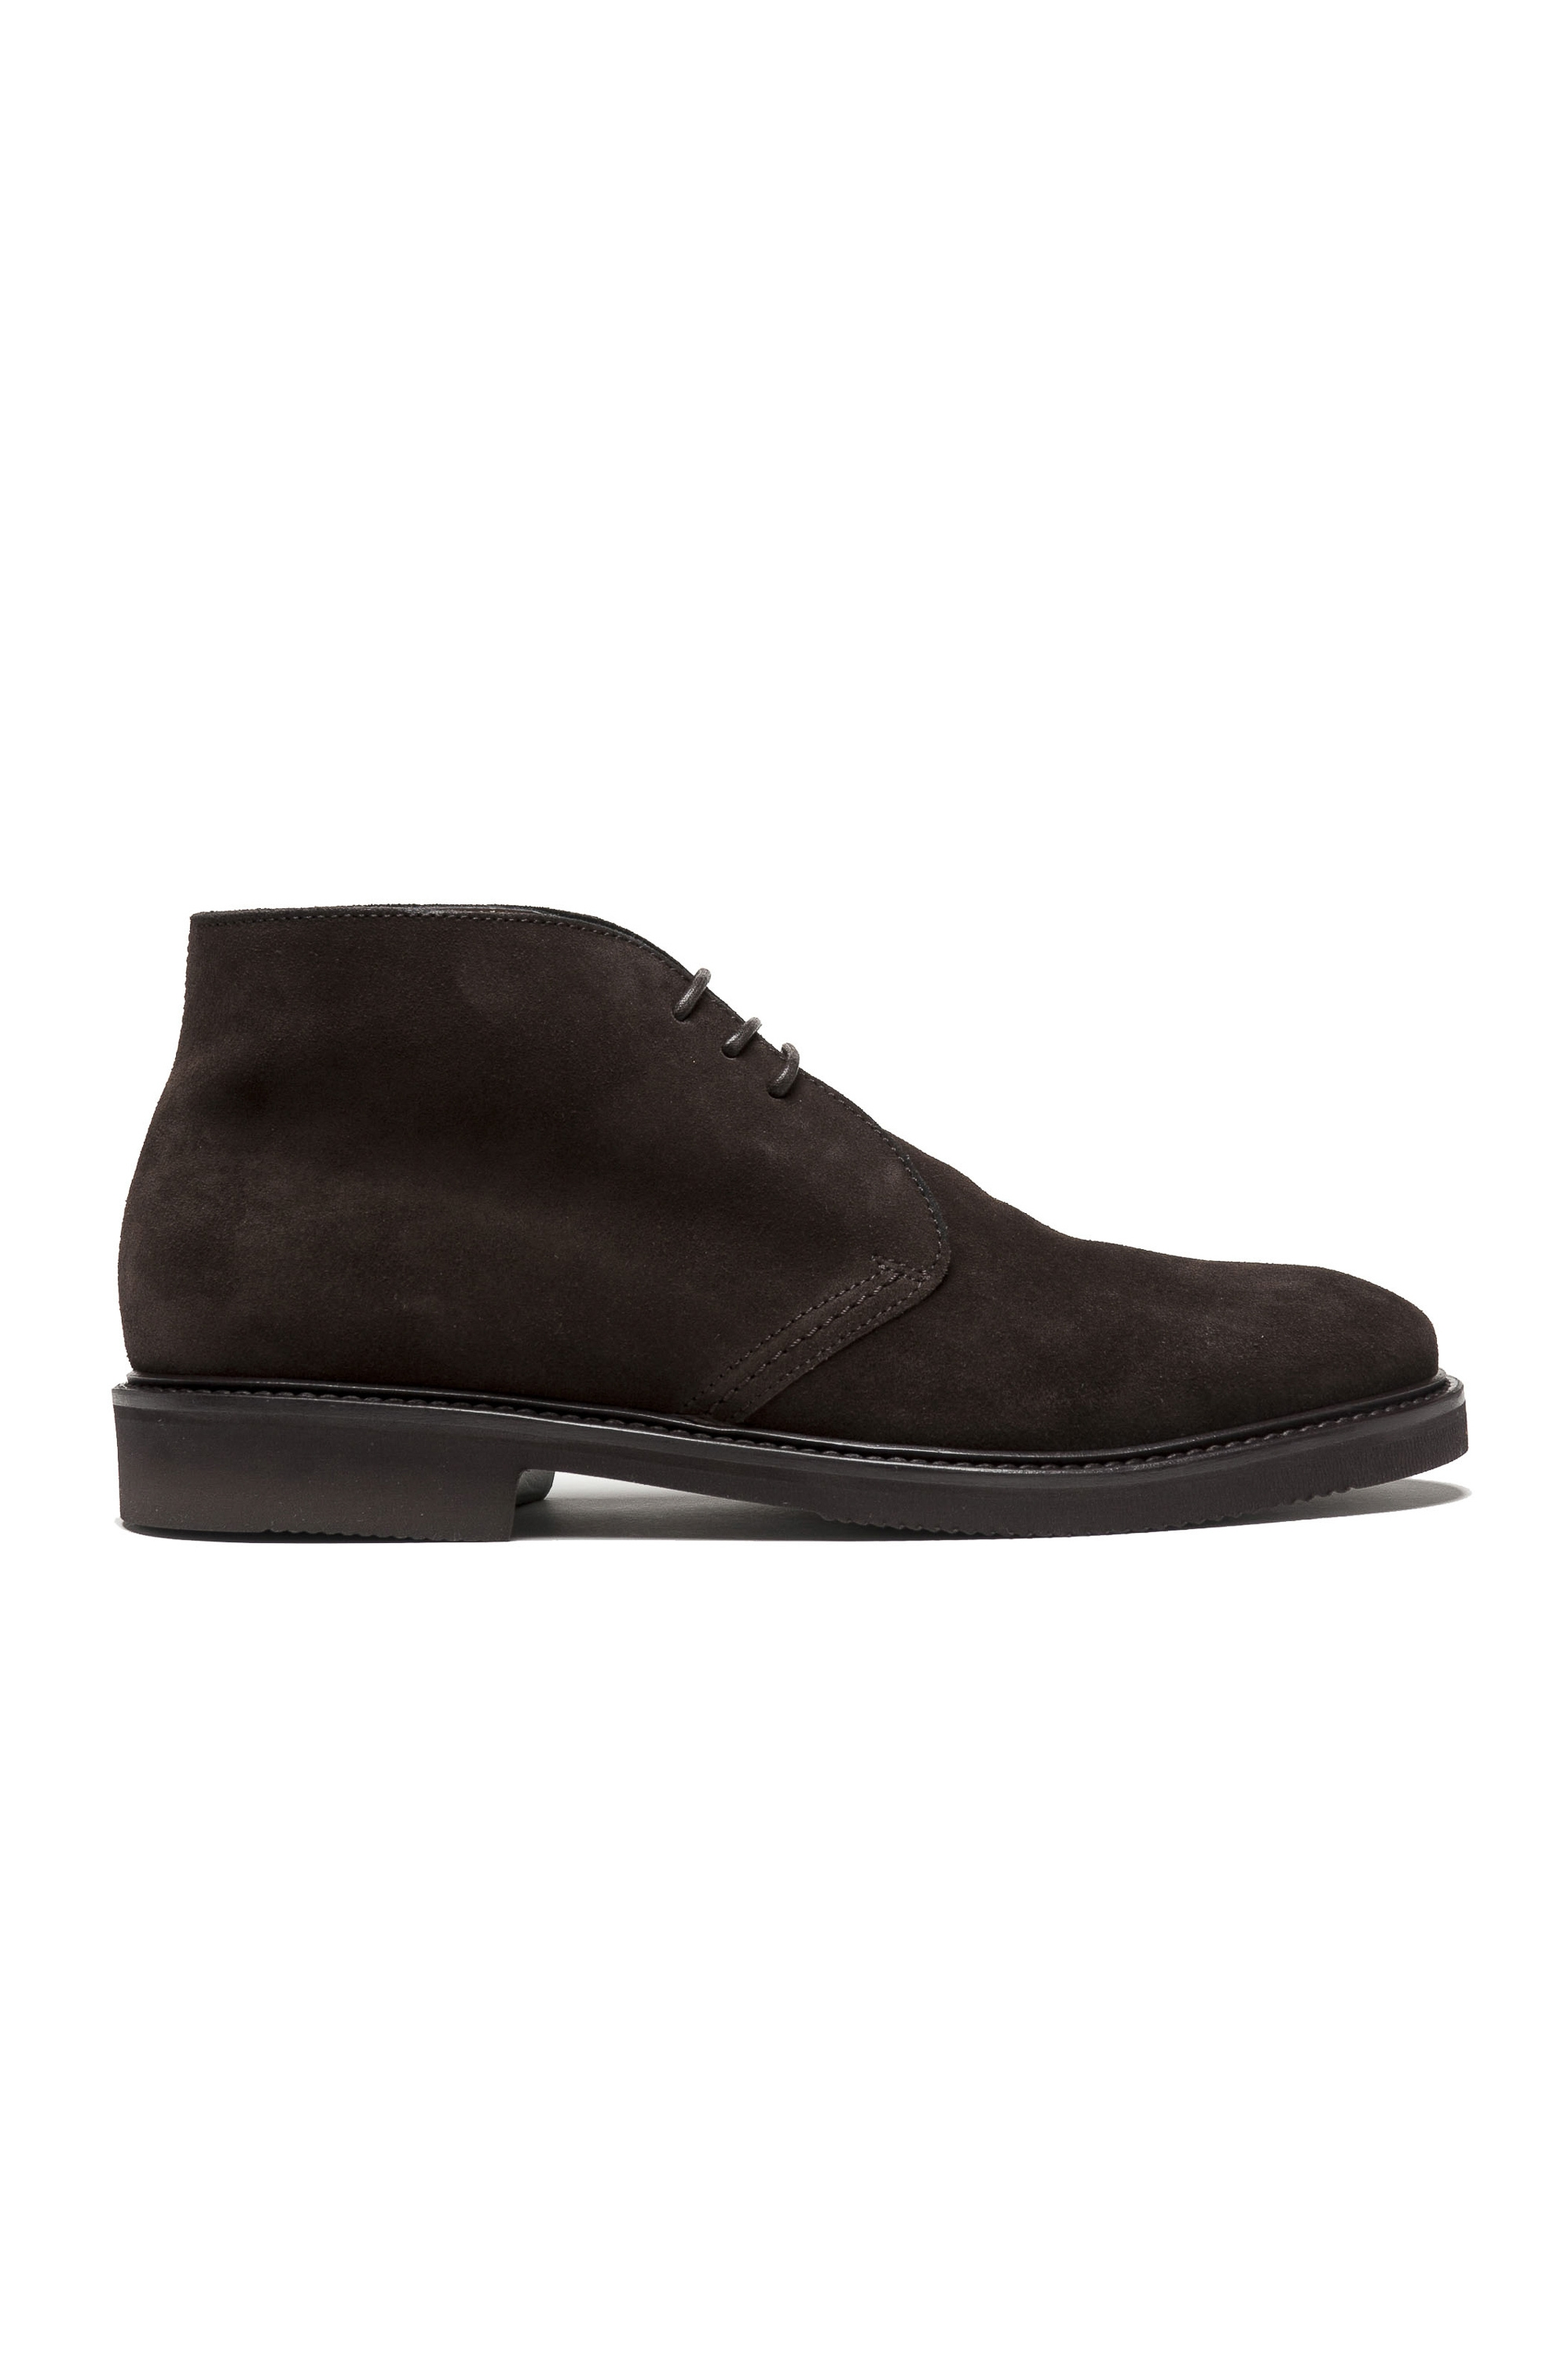 SBU 01501_2020SS Brown lace-up plain suede chukka boots with Vibram rubber sole 01